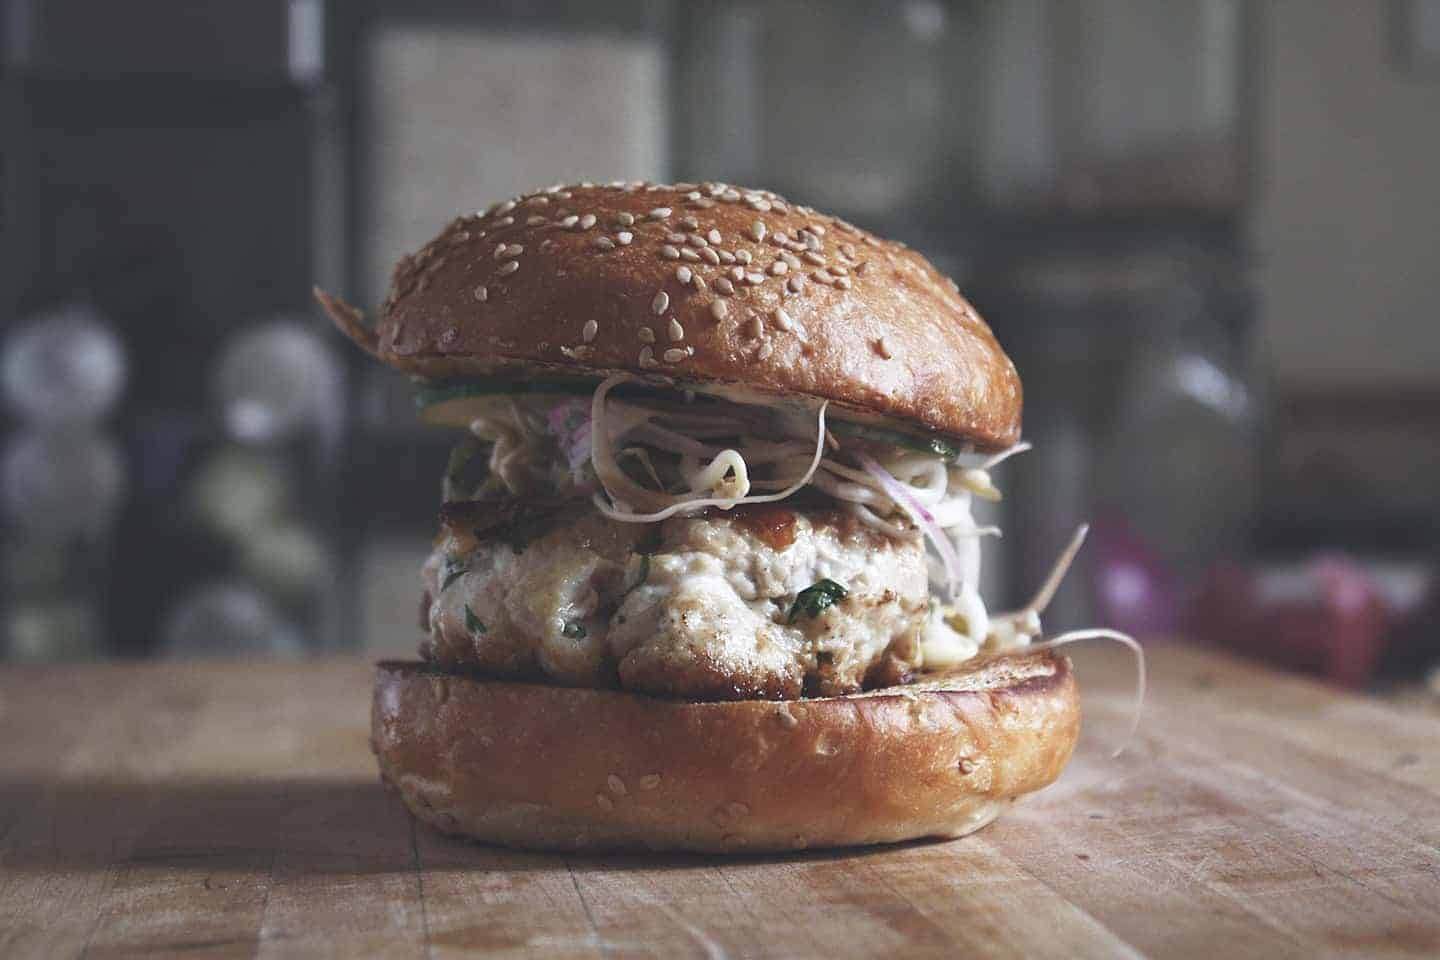 Thai Tuna Burger